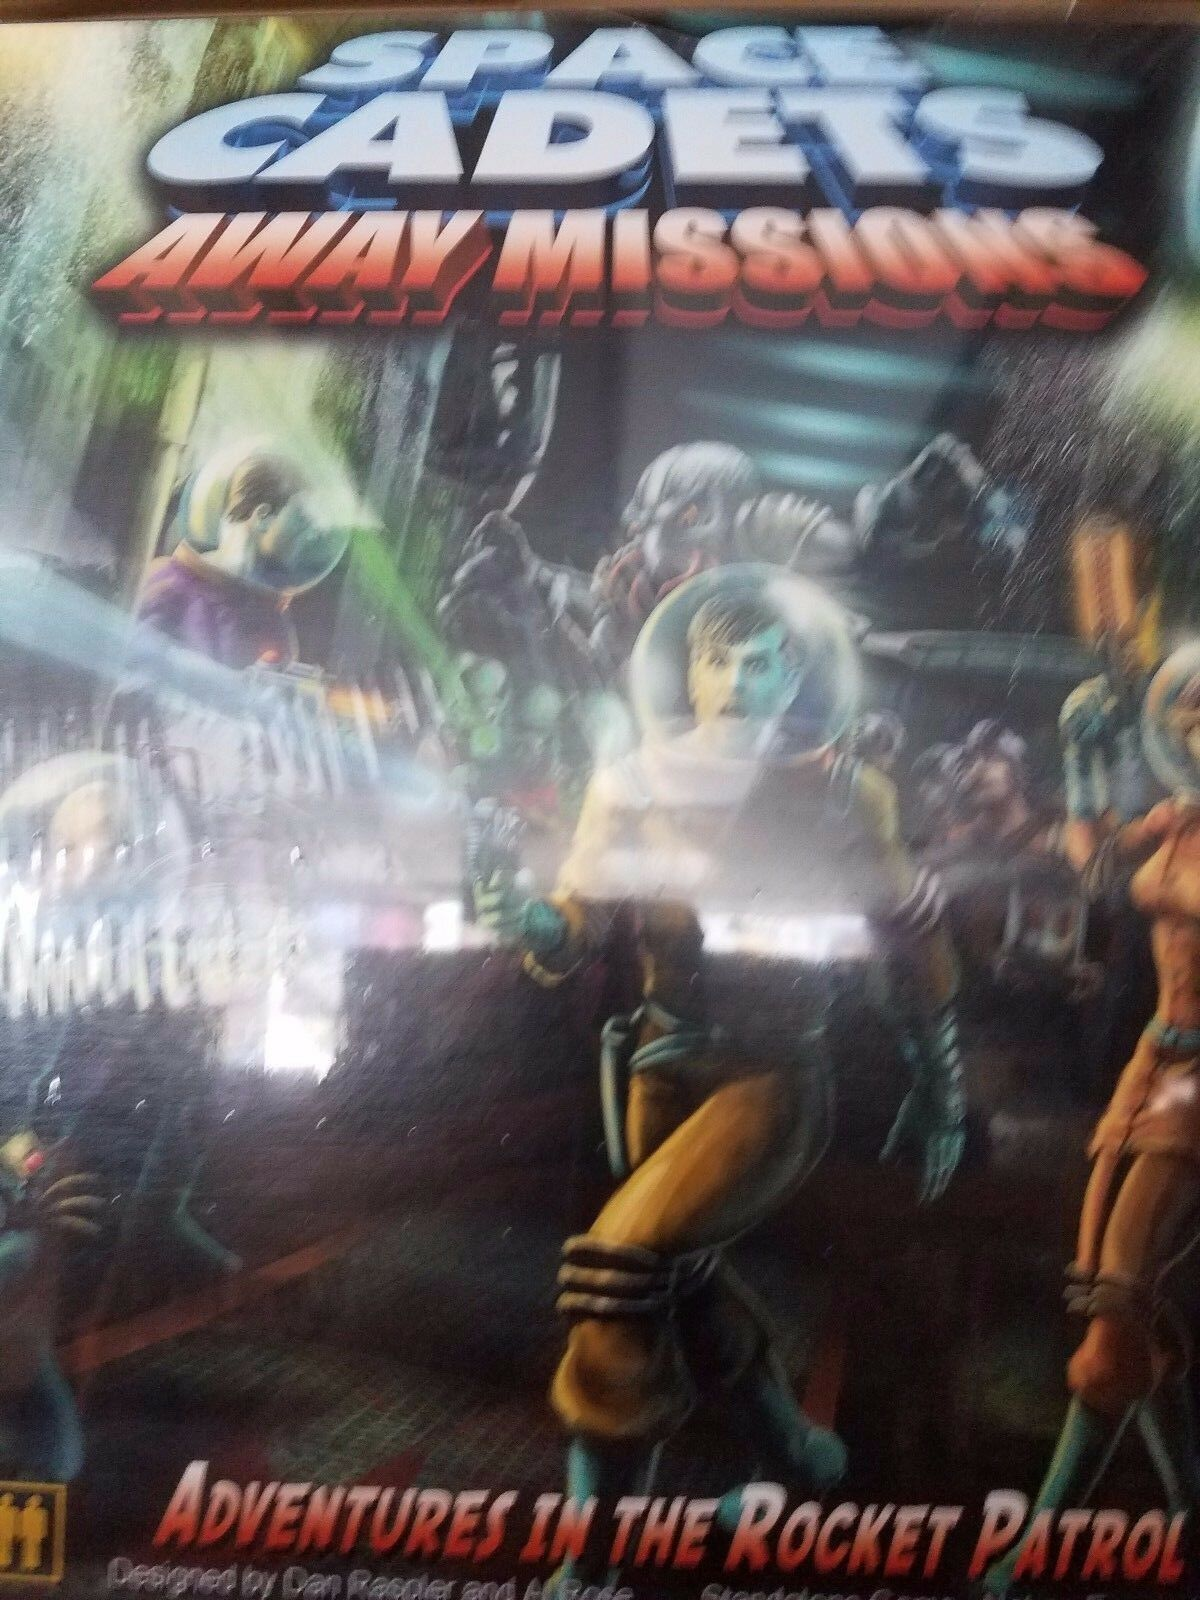 Space ets Away missions Board Game-Stronghold JEUX NEUF new in box